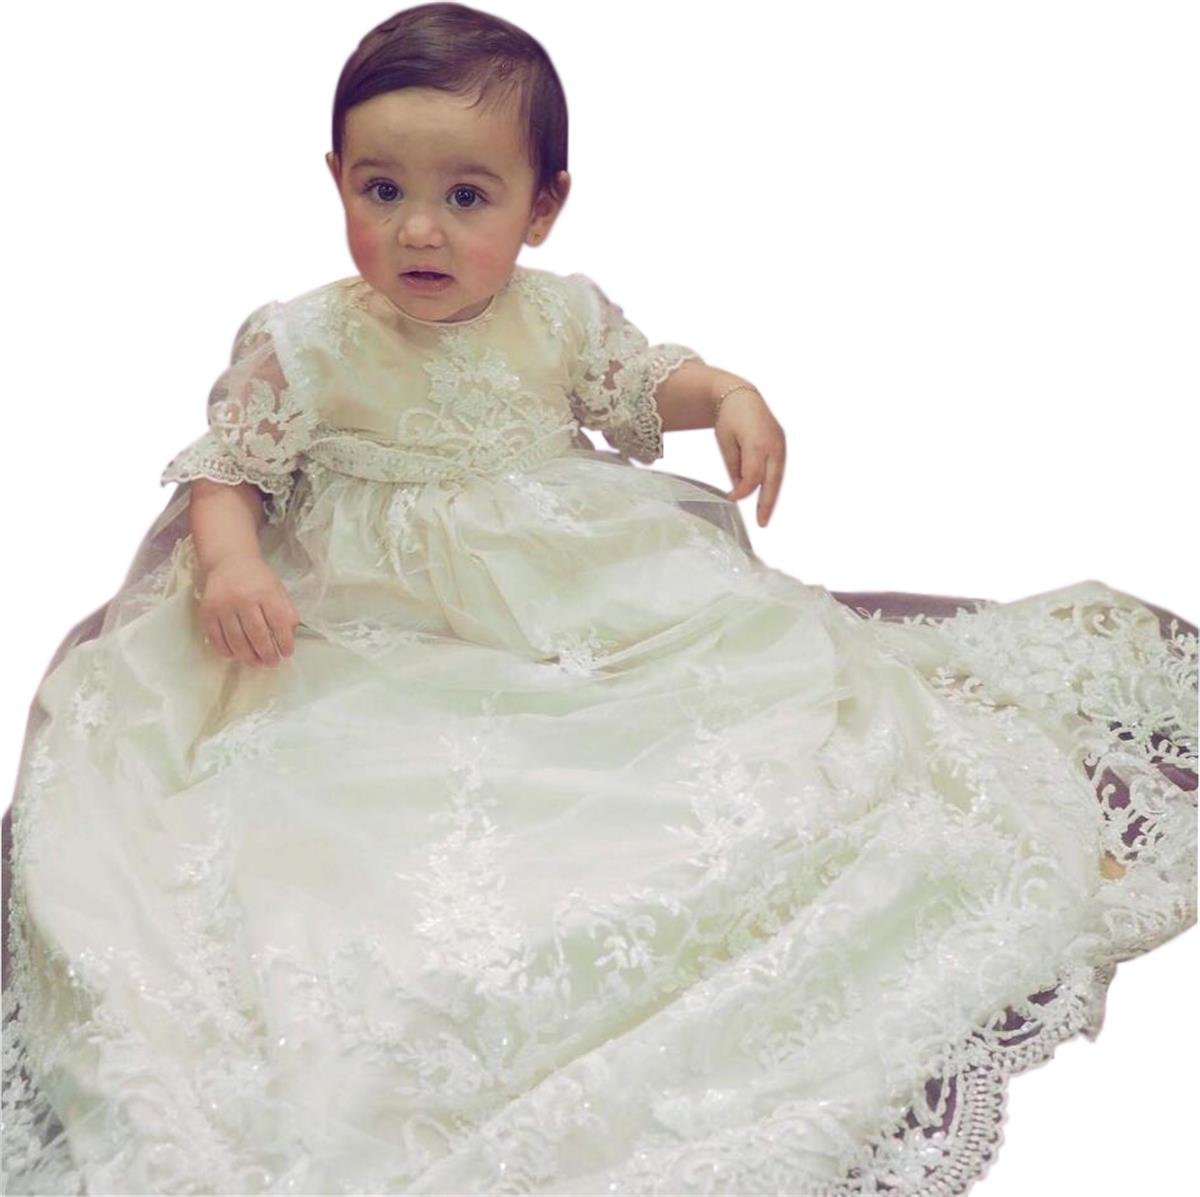 Pretydress Baby Lace Satin Christening Dress Baptism Gowns with Bonnet mws